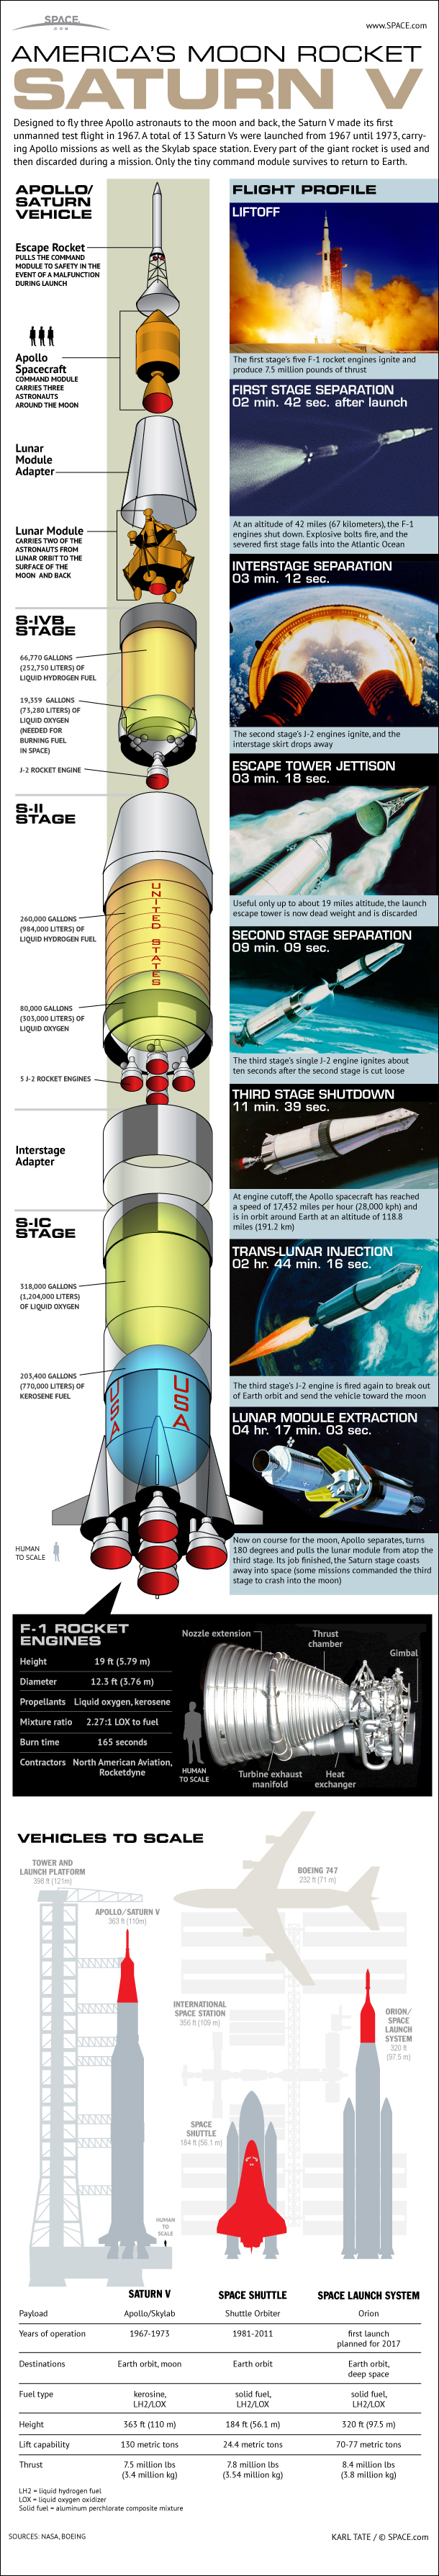 Nasas Mighty Saturn V Moon Rocket Explained Infographic Missile Engine Diagram